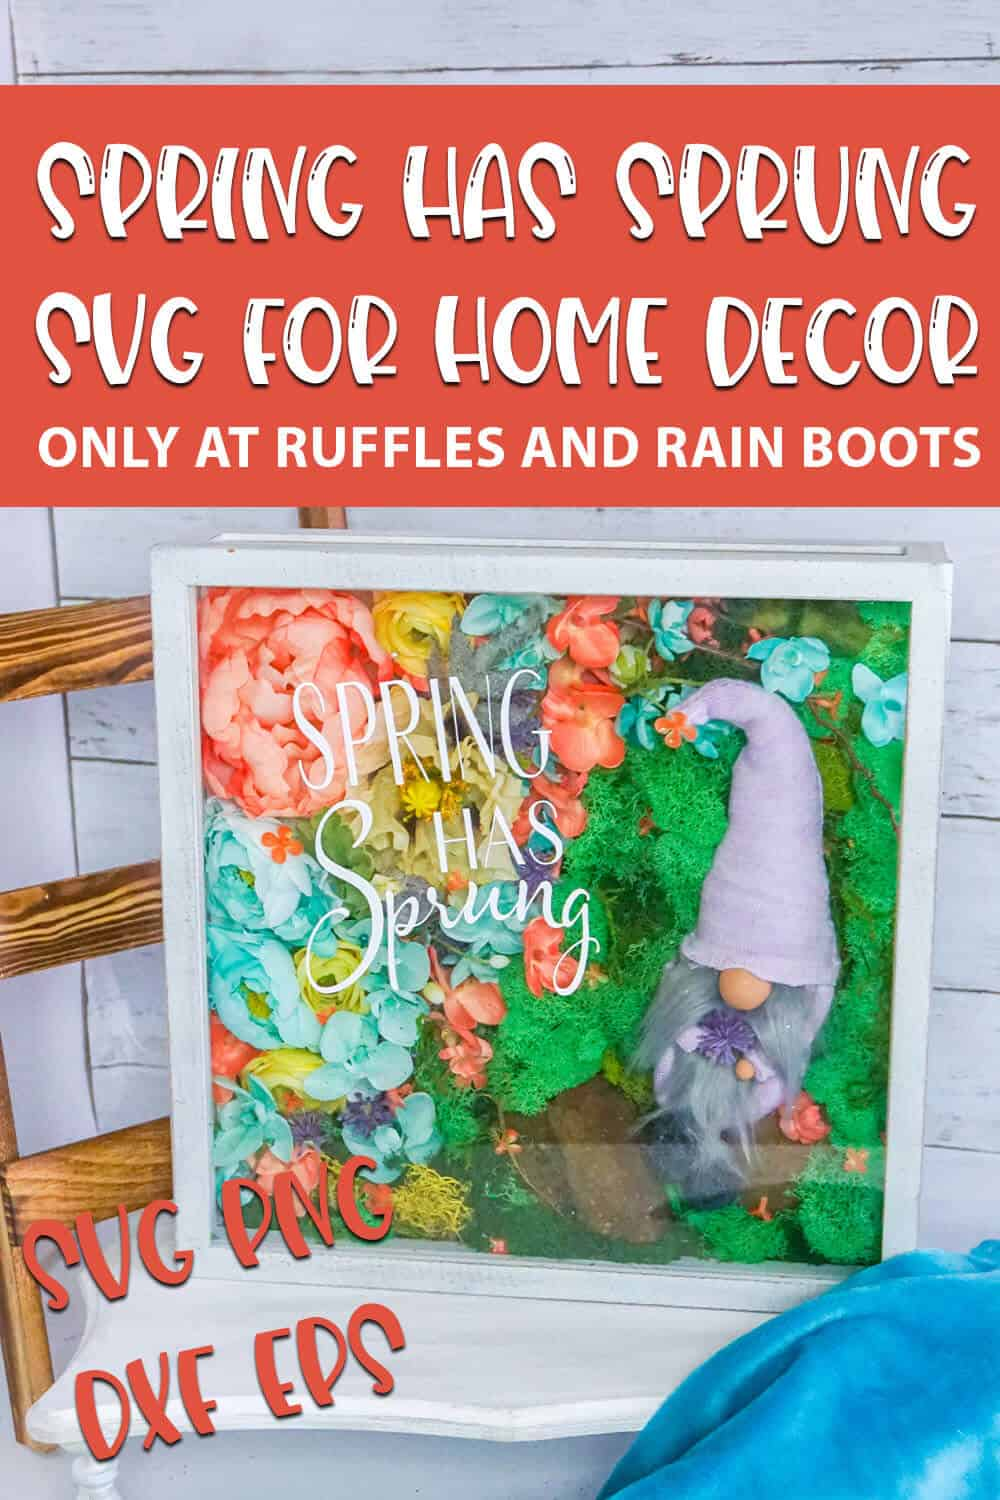 Spring Has Sprung cut file for cricut projects with text which reads spring has sprung svg for home decor svg png dxf eps